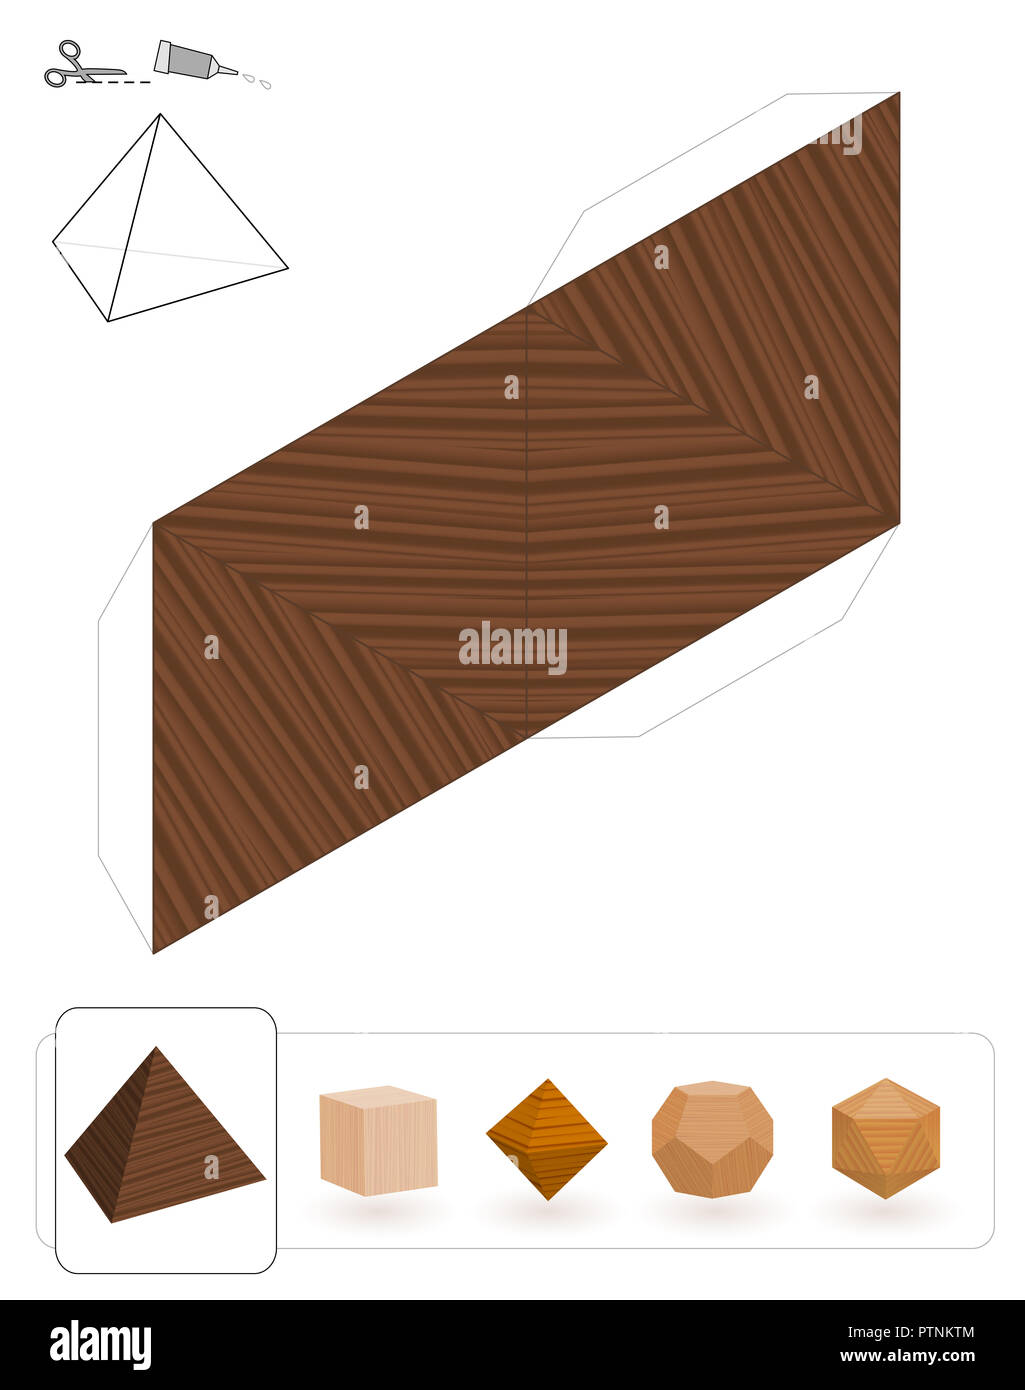 Platonic solids. Template of a tetrahedron with wooden texture to make a 3d paper model out of the triangle net. - Stock Image